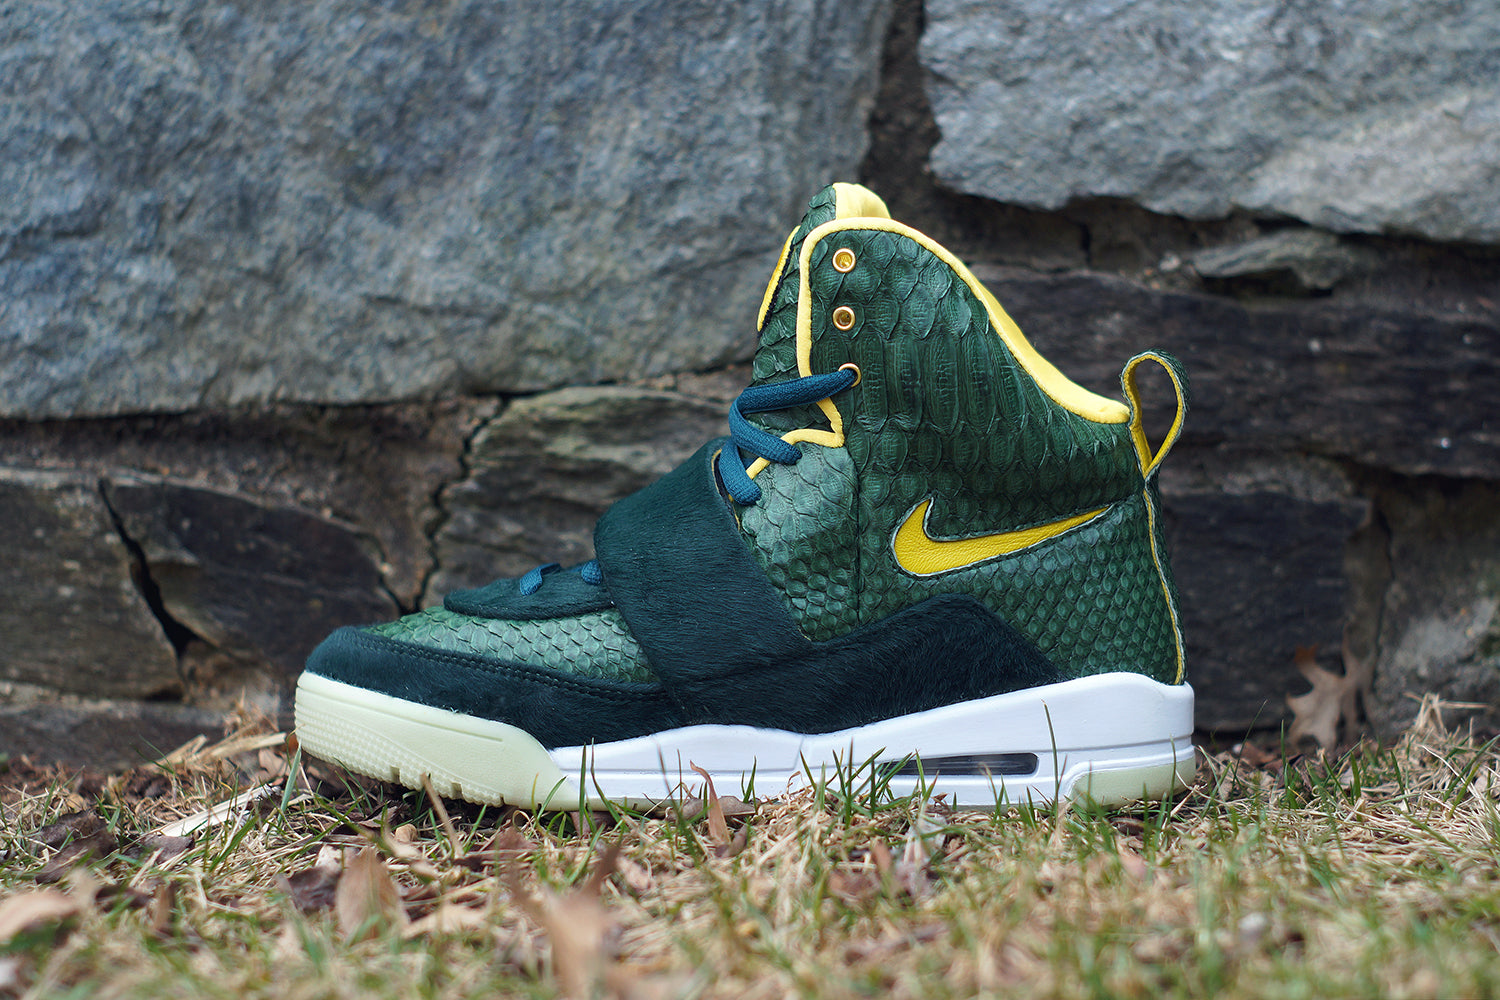 Oregon Yeezy 1